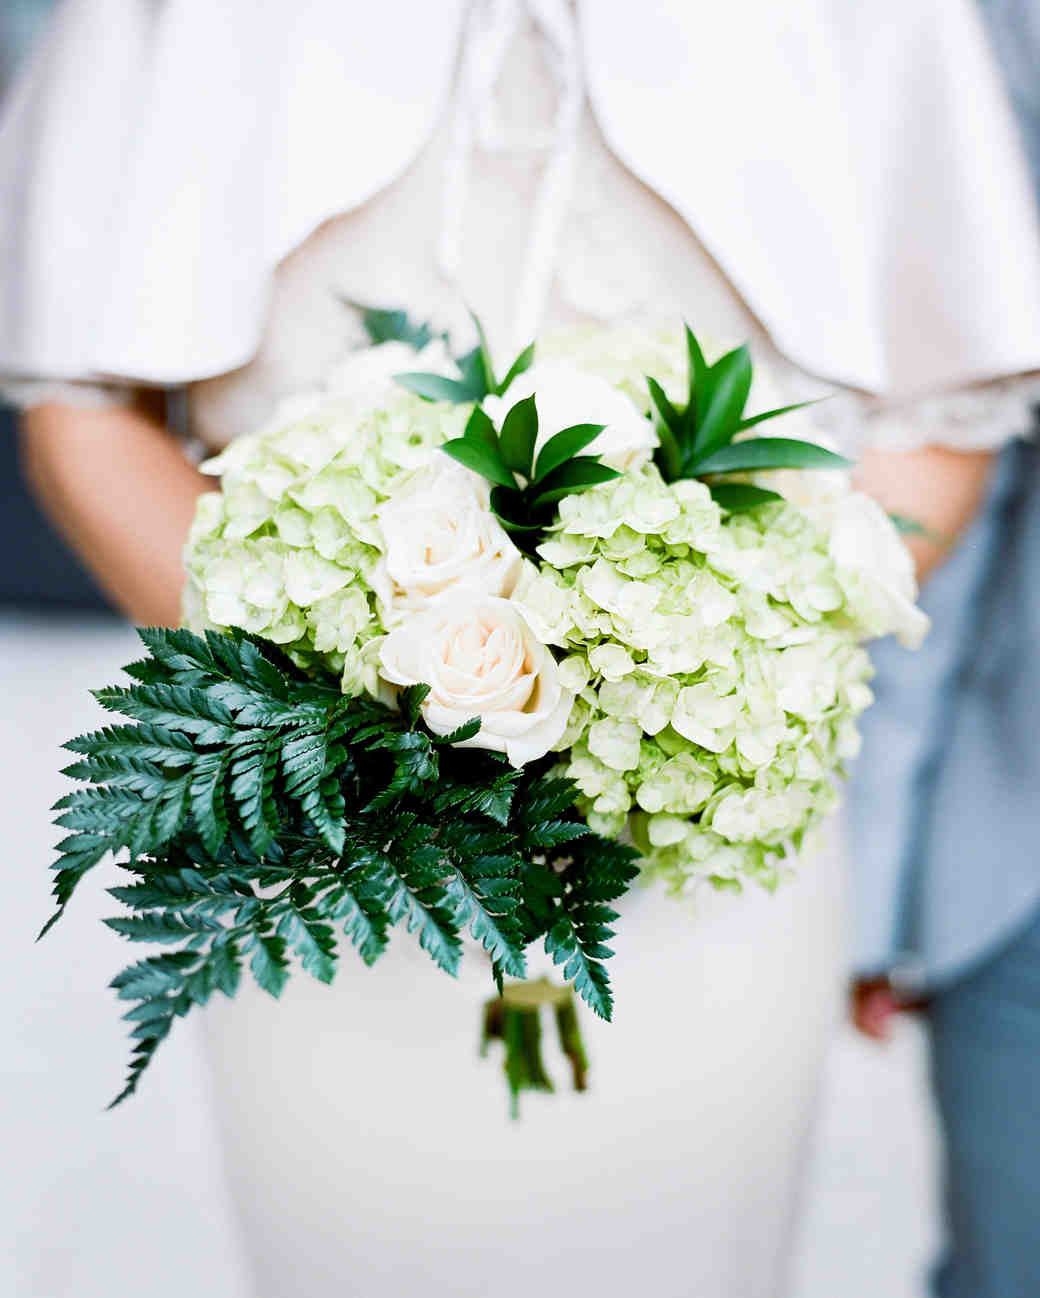 Fern Wedding Bouquet with Hydrangeas